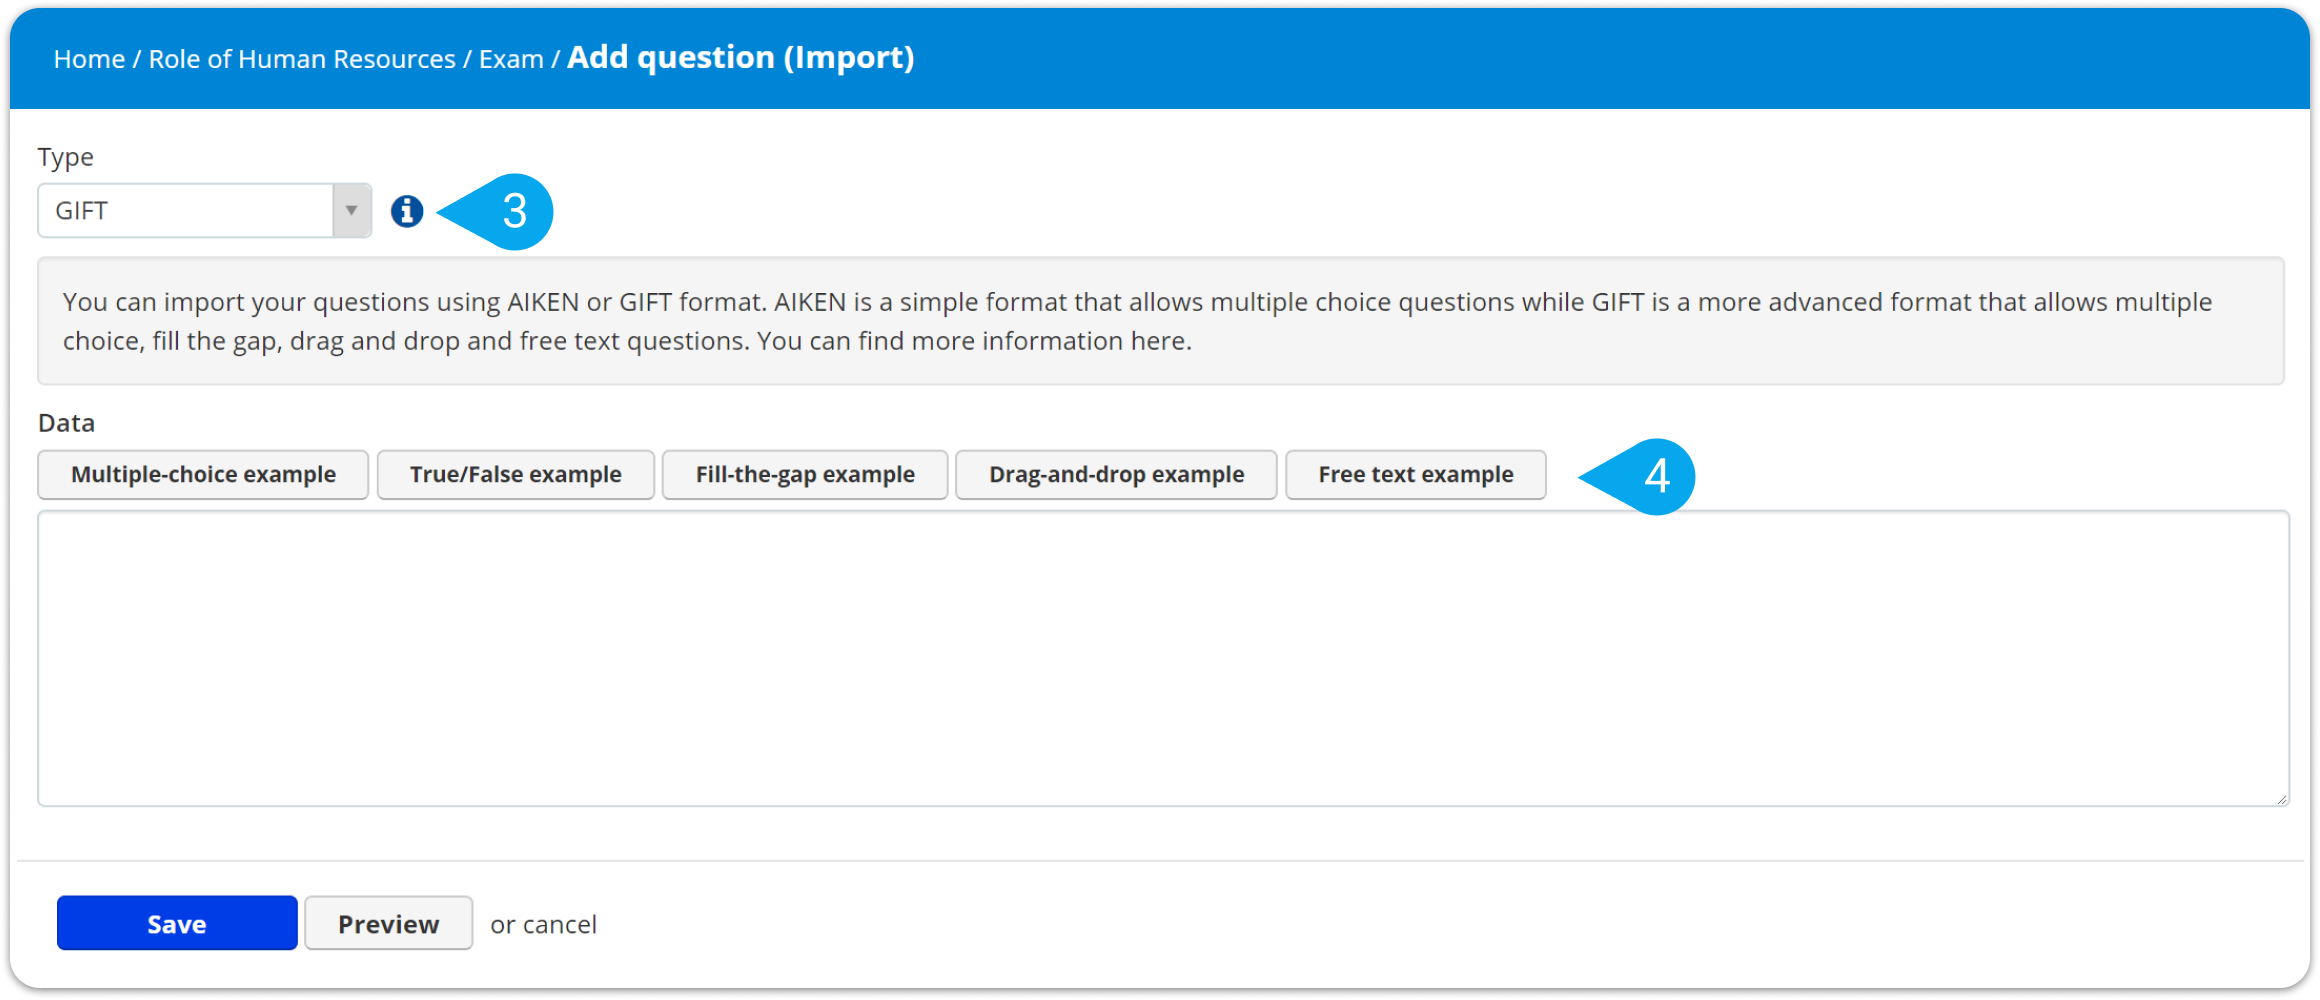 How to import questions in the GIFT/AIKEN formats